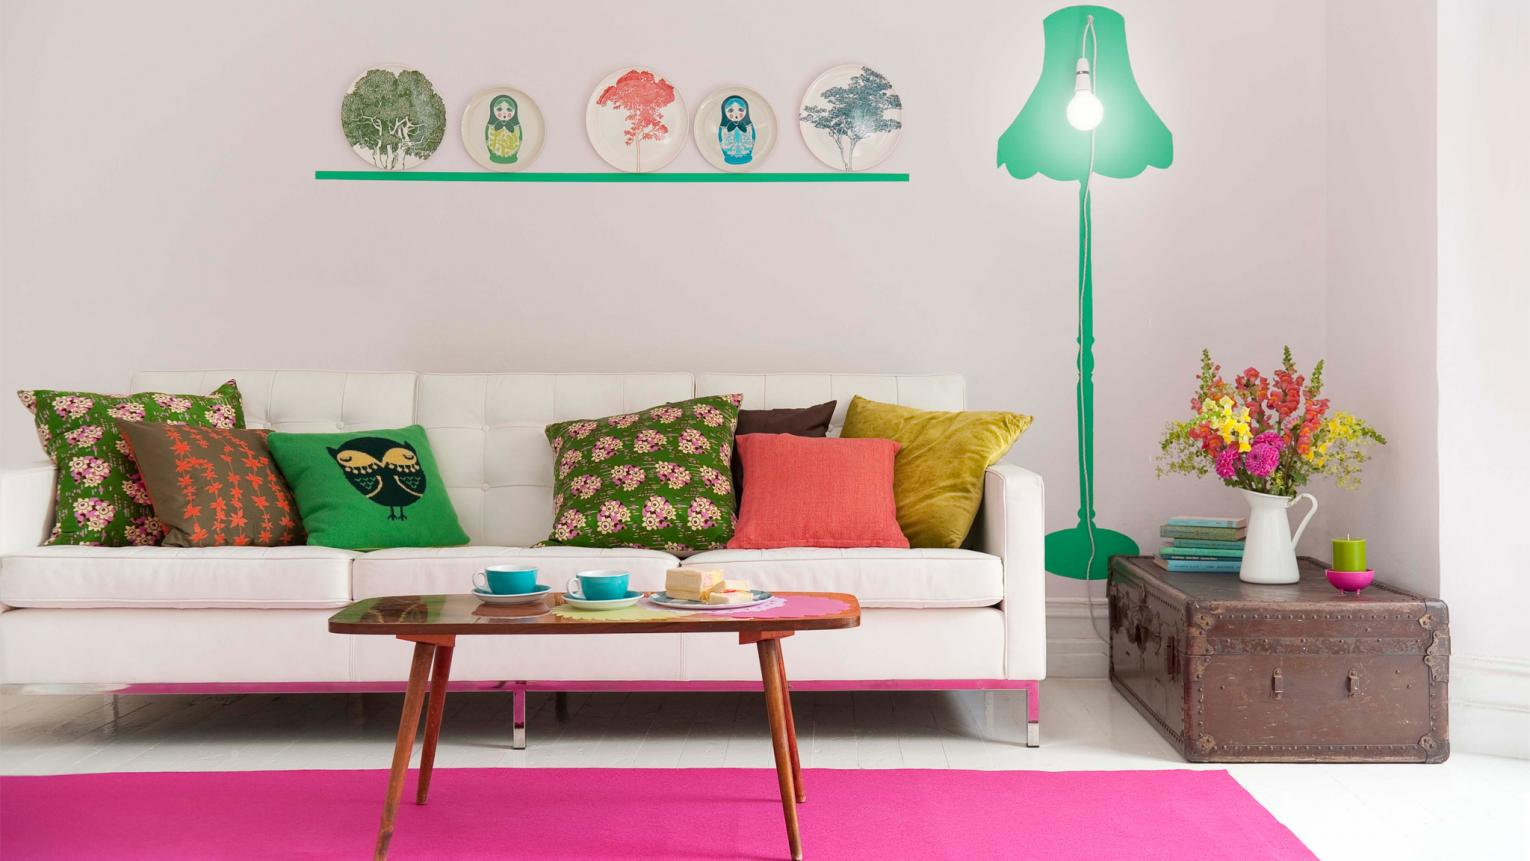 Use fresh, vivid shades of pink and green to enliven a room.